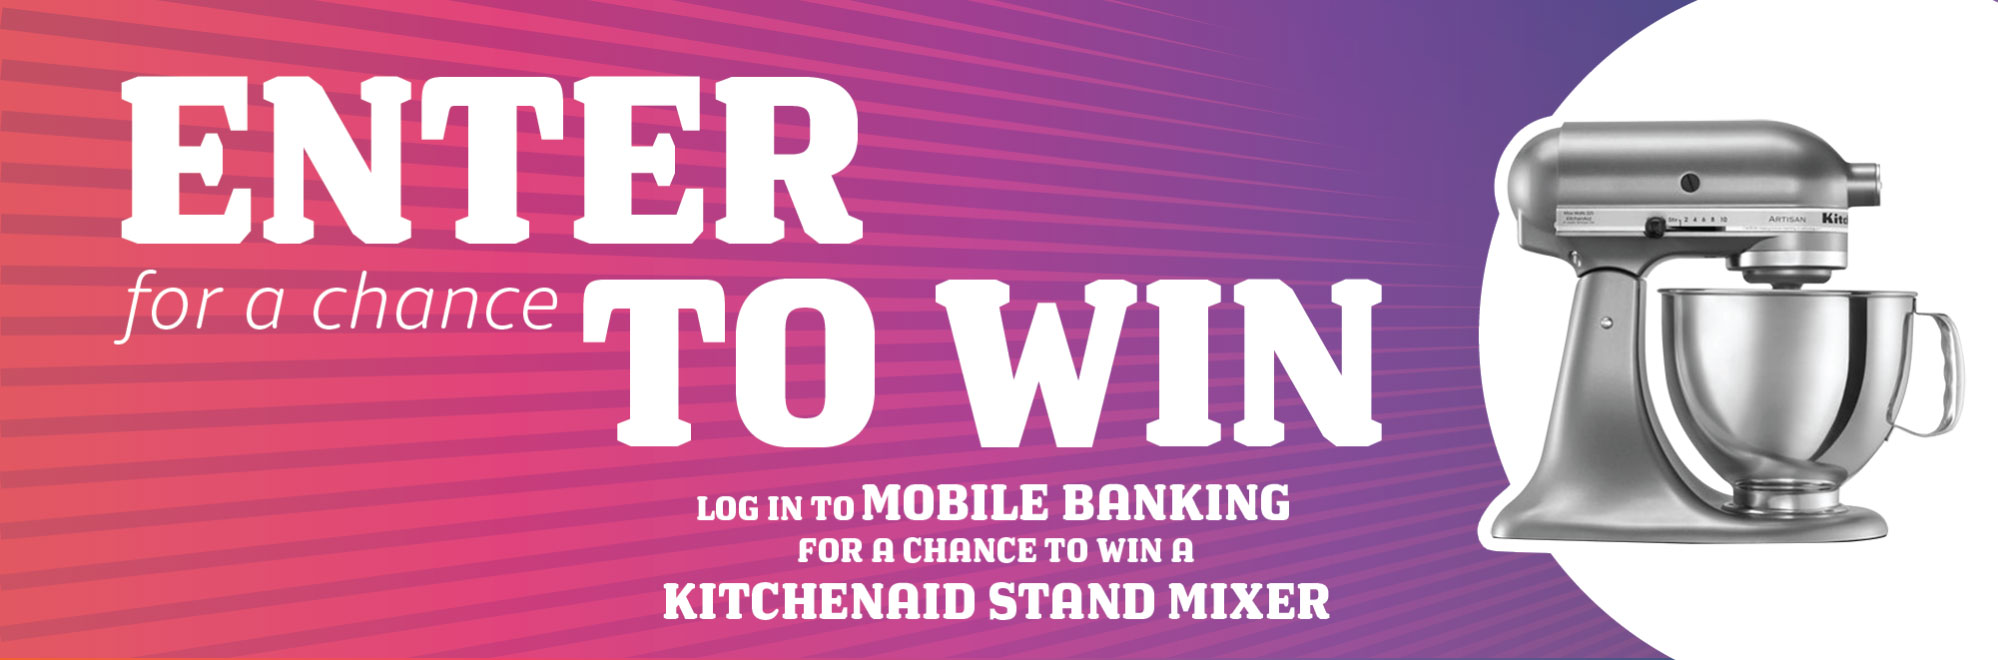 Enter SACFCU's Mobile Banking Contest for a chance to win a Kitchenaid Stand Mixer! All you have to do is log onto mobile banking.